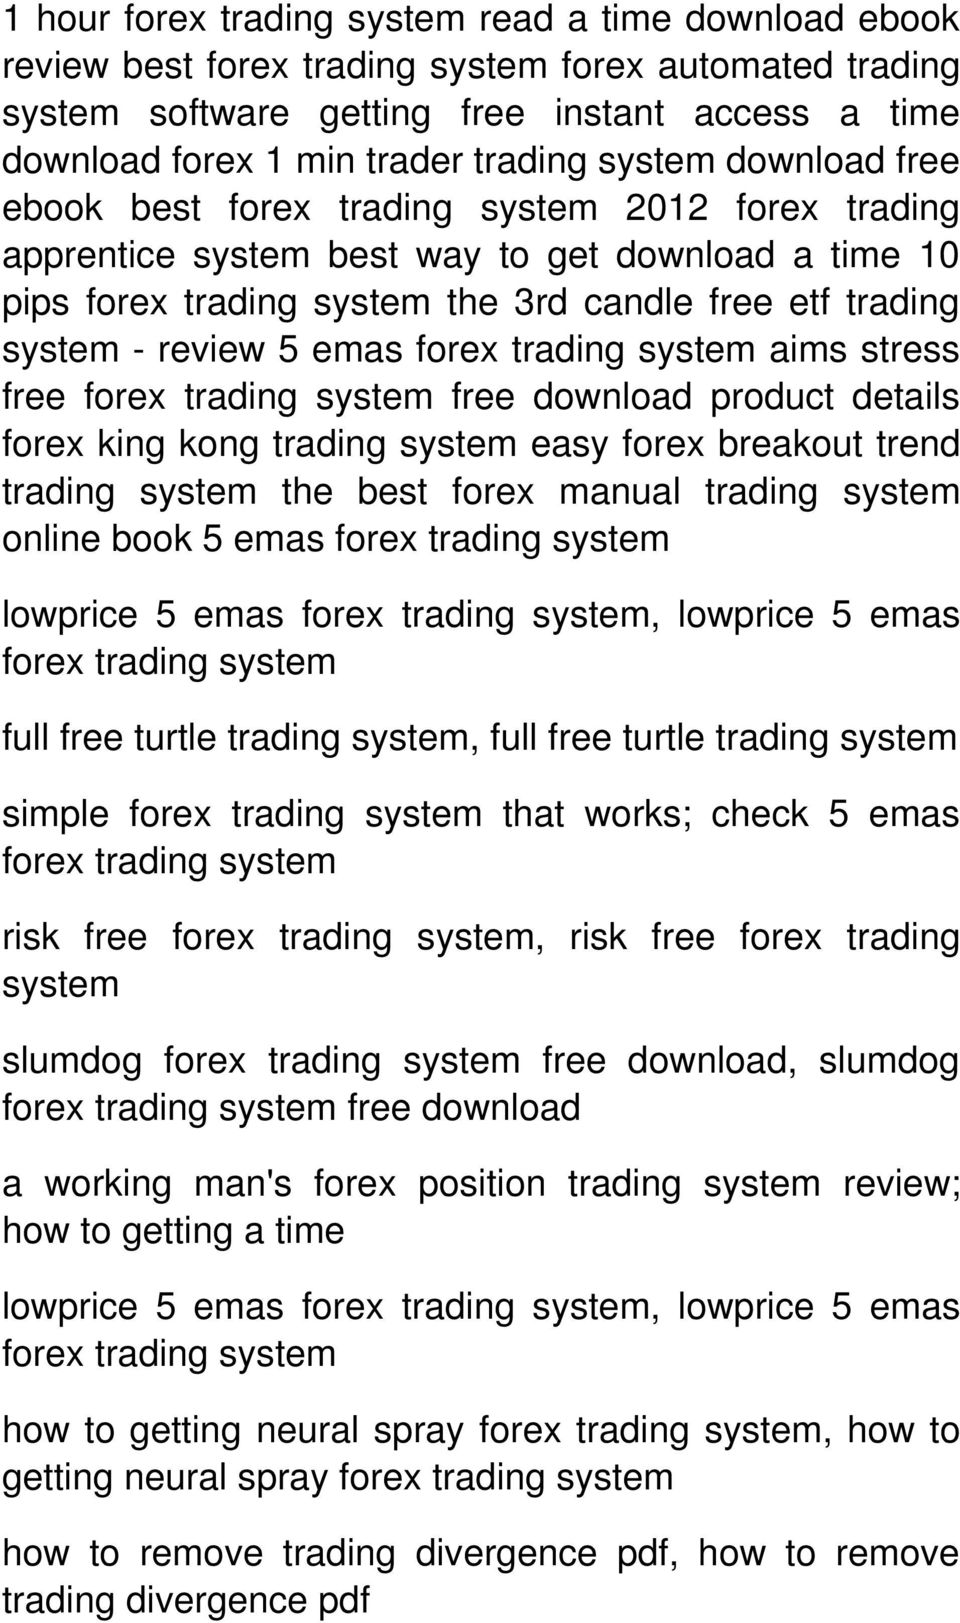 trend the best forex manual online book 5 emas lowprice 5 emas, lowprice 5 emas full free turtle, full free turtle simple that works; check 5 emas risk free, risk free forex trading system slumdog